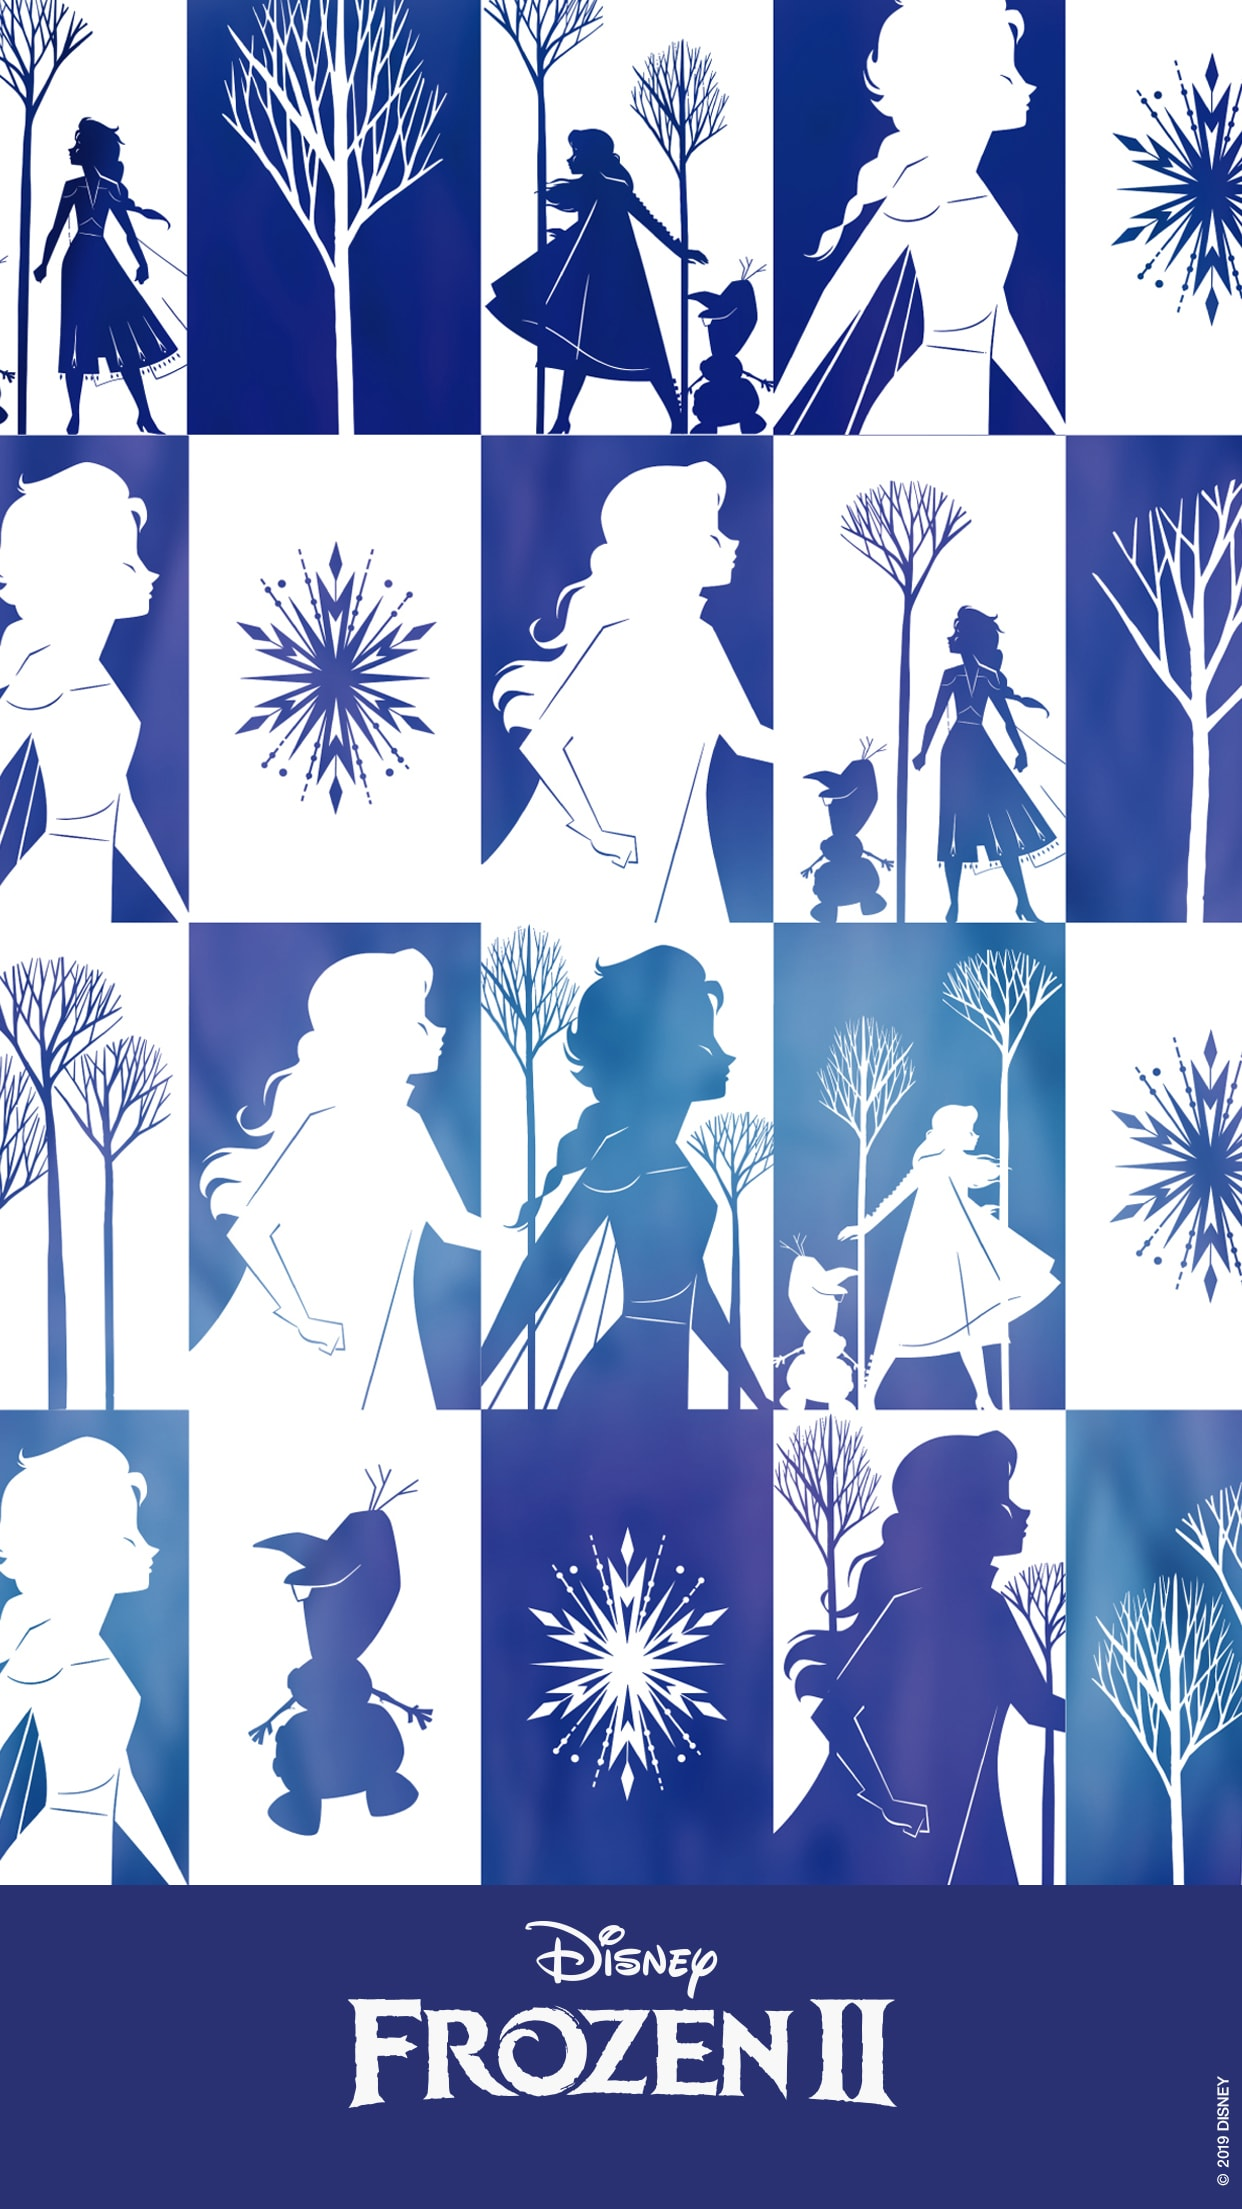 These Disney S Frozen 2 Mobile Wallpapers Will Put You In A Mood For Adventure Disney Singapore